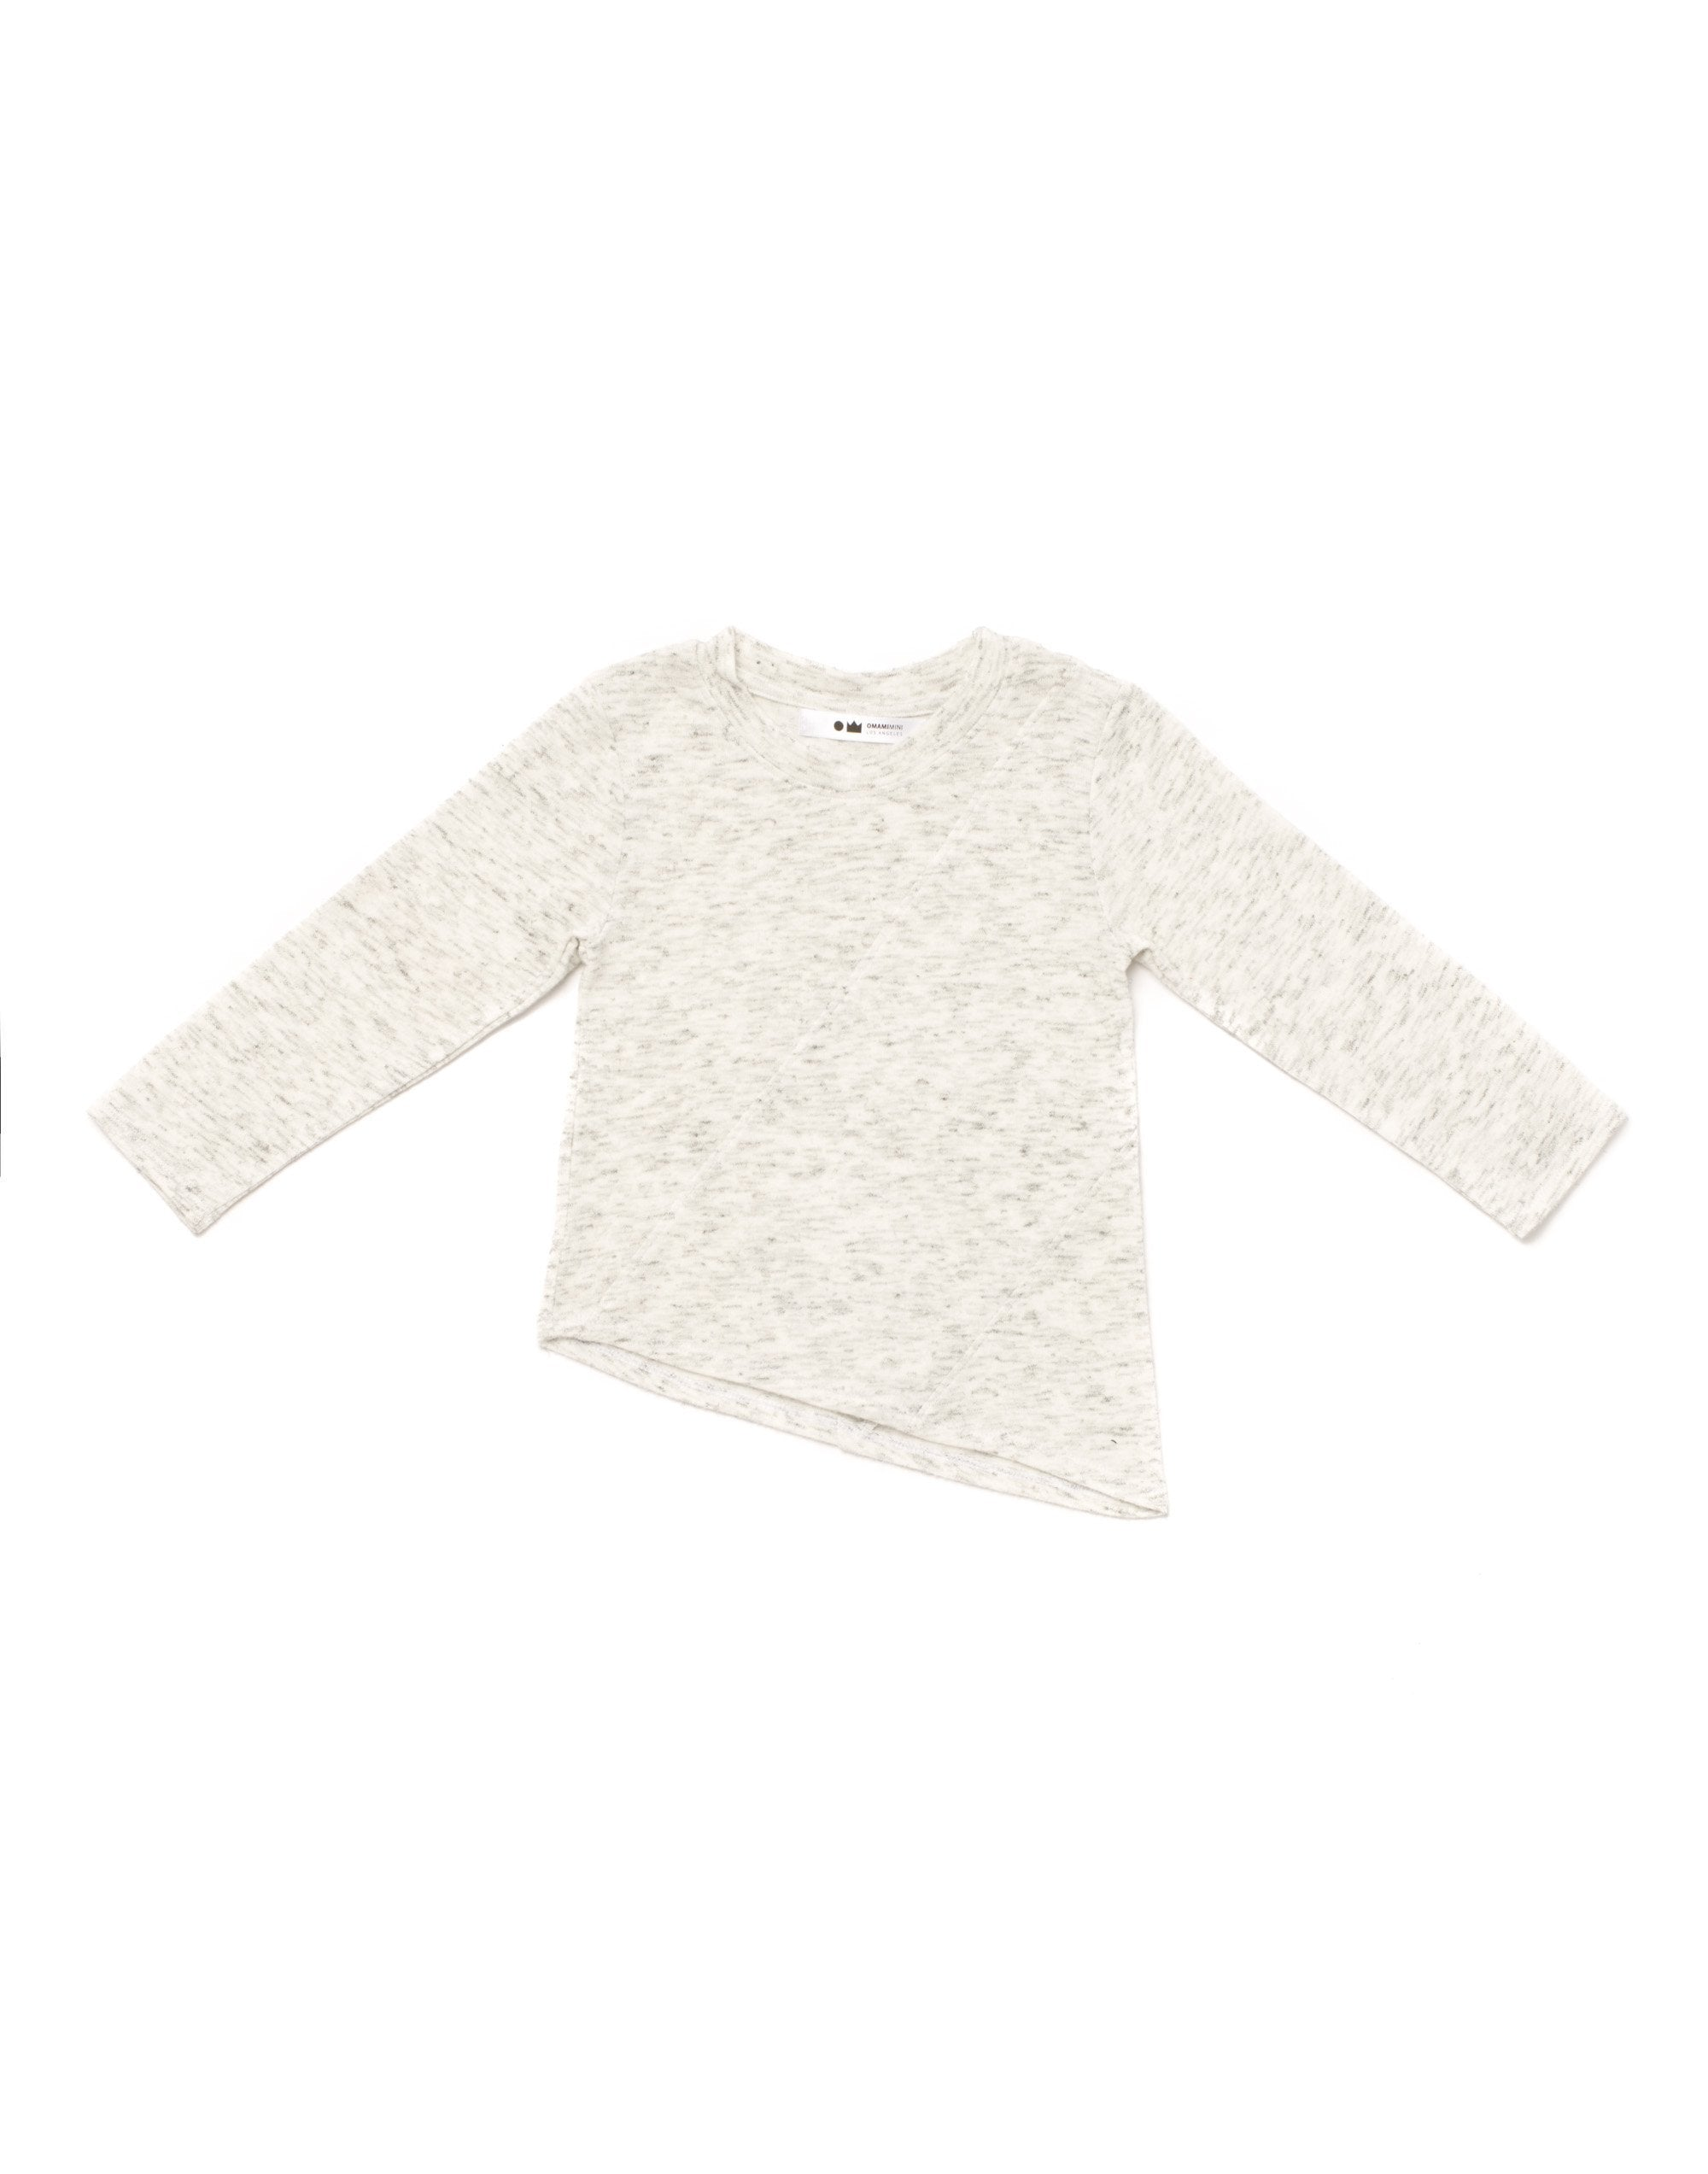 Knit long sleeve tee w/ asymmetrical hem